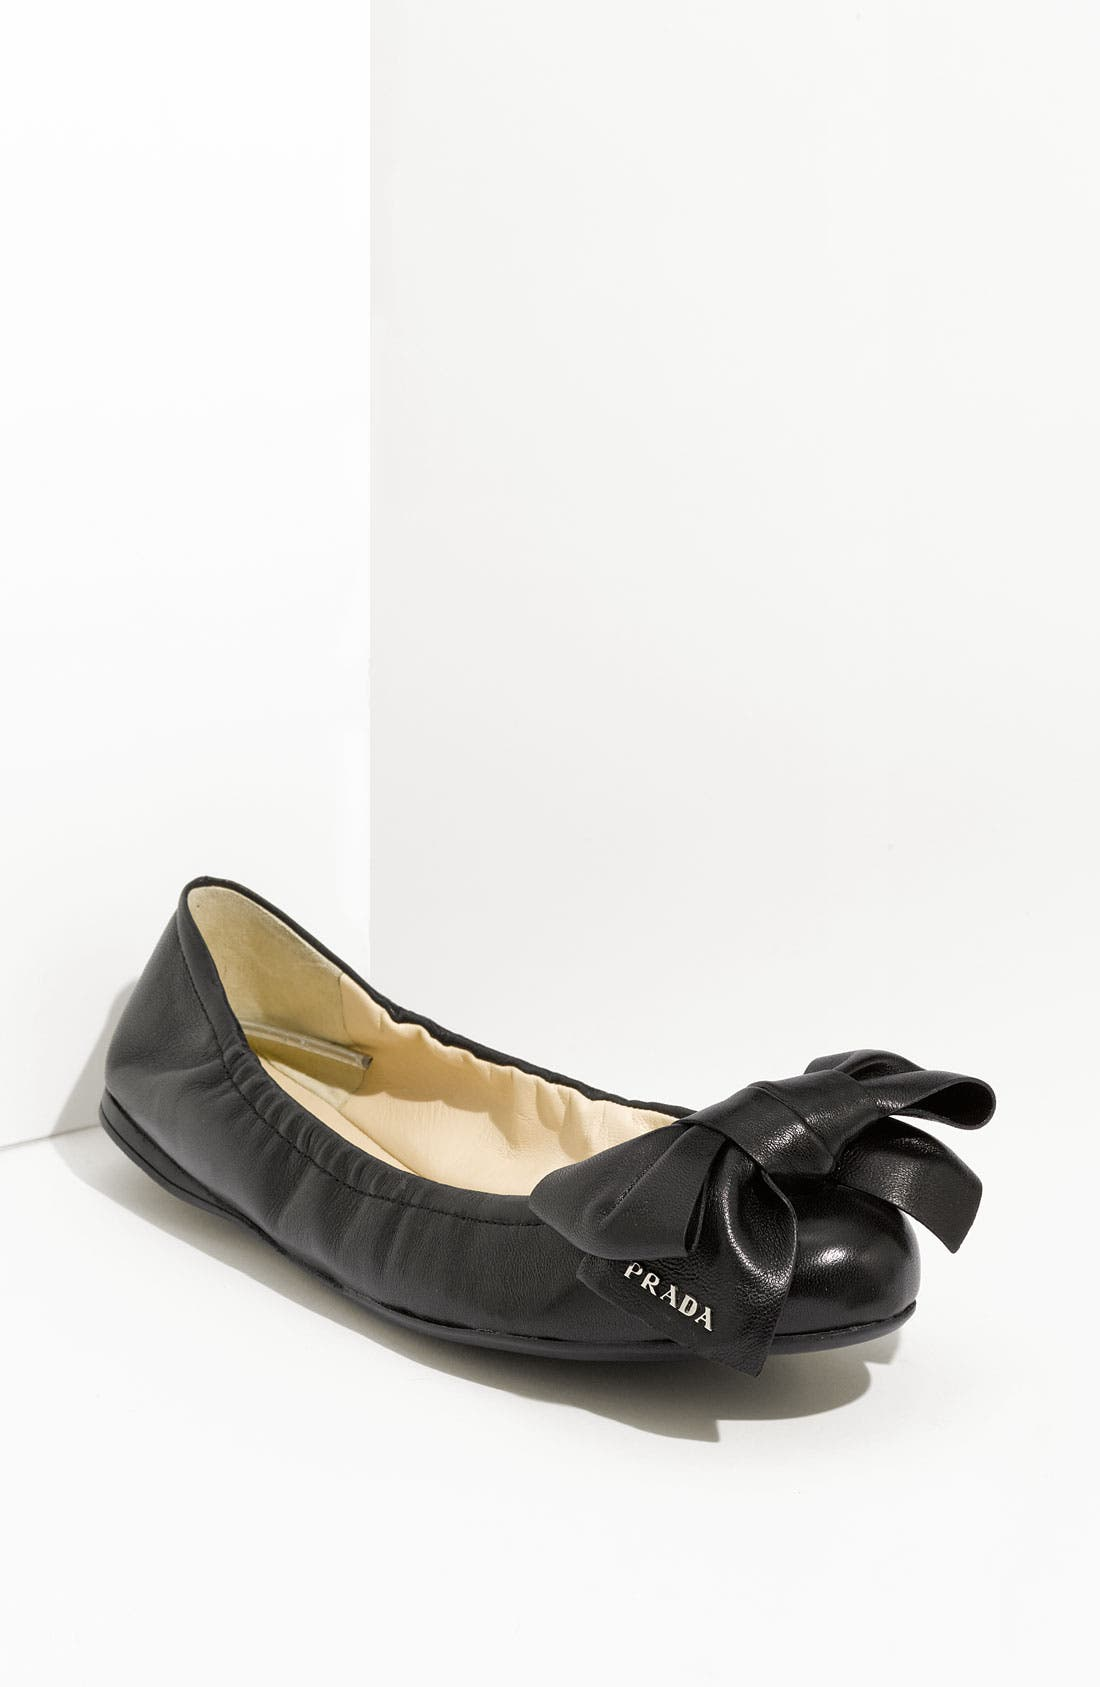 Alternate Image 1 Selected - Prada Bow Ballerina Flat